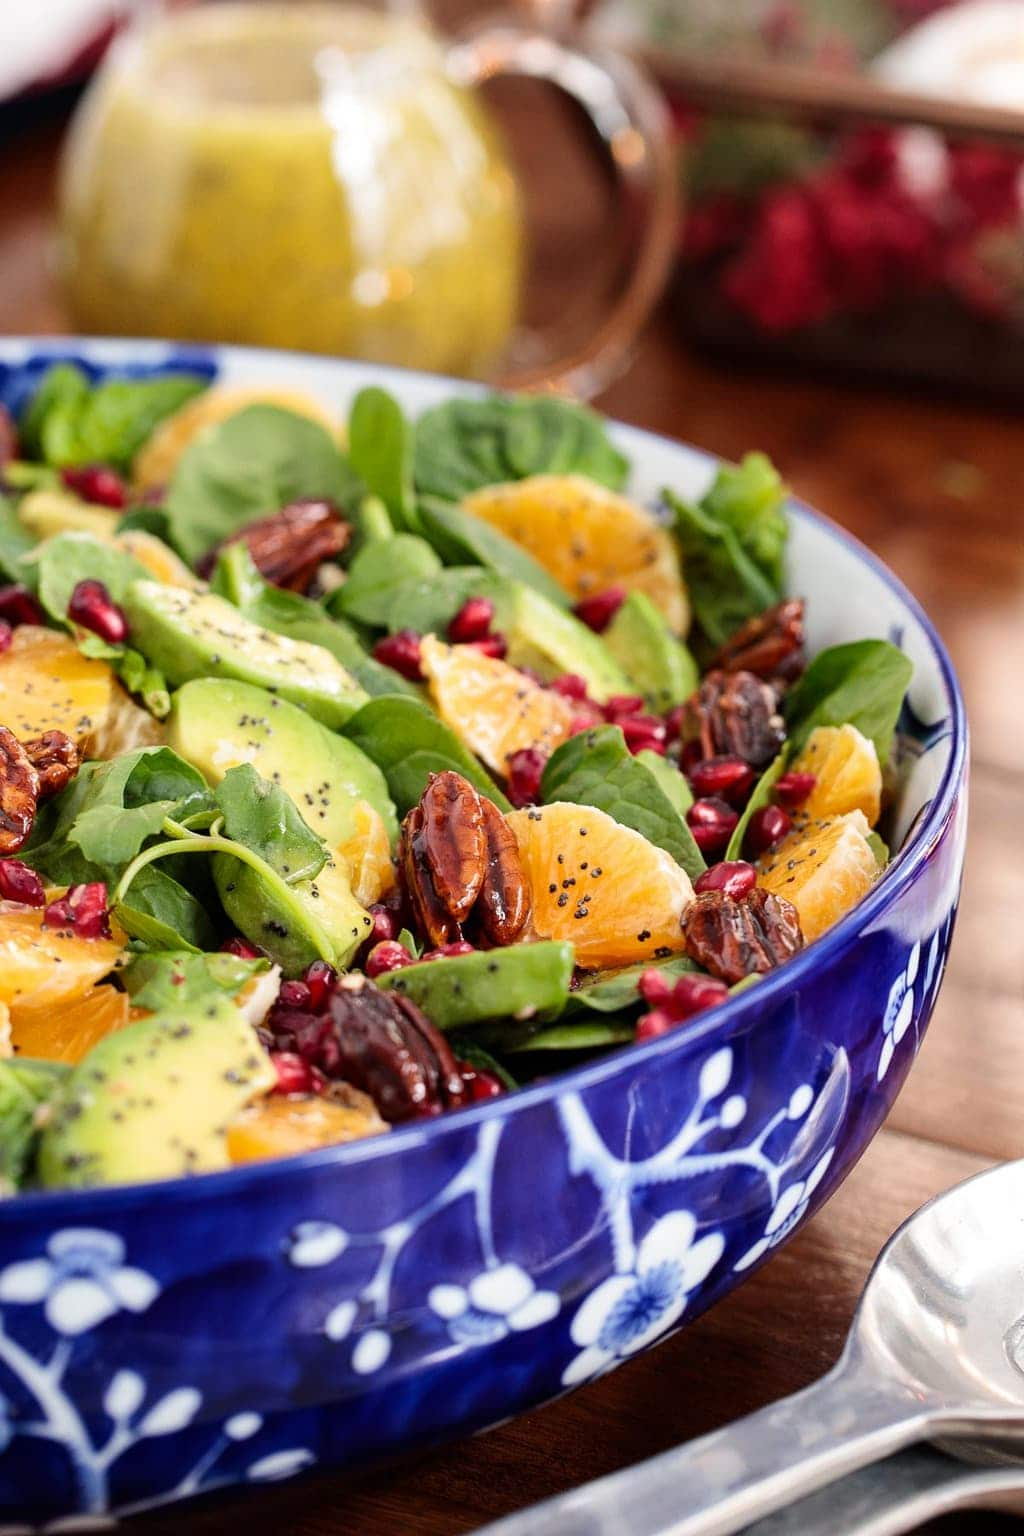 Photo of a blue and white patterned bowl of Clementine Avocado Spinach Salad on a wood table with a glass jar of vinaigrette in the background.